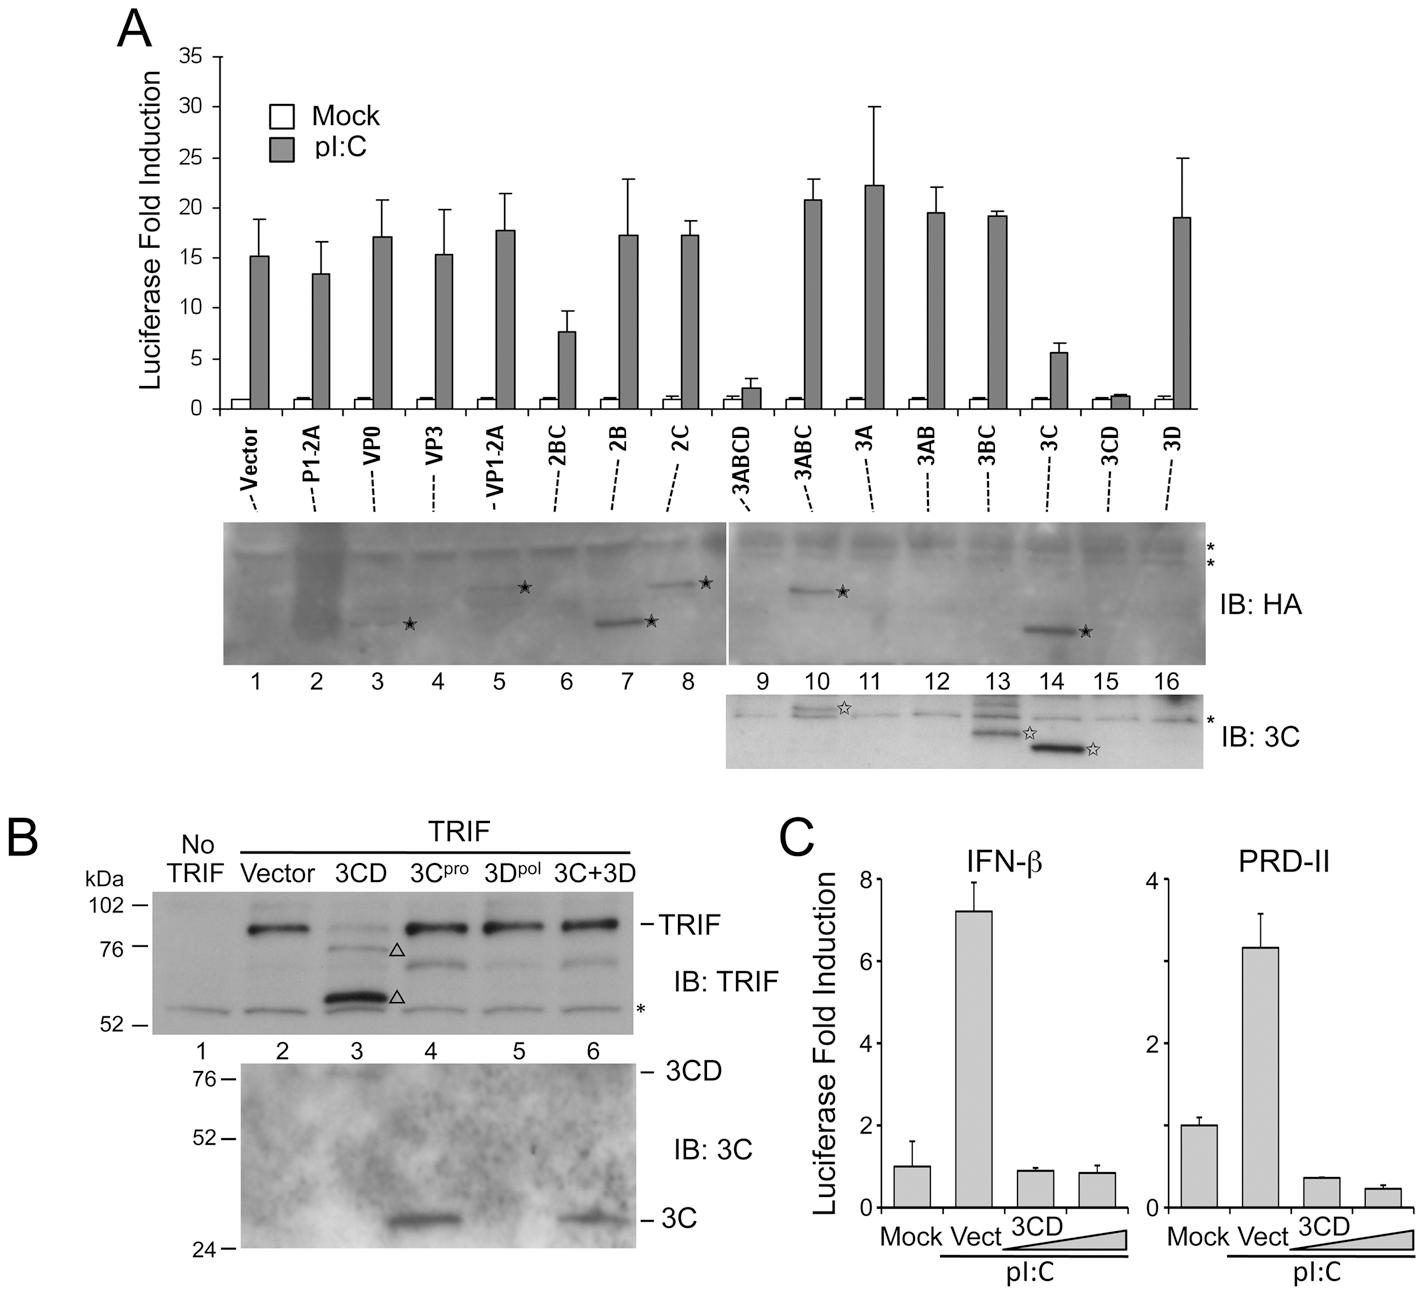 The HAV 3CD protease-polymerase precursor disrupts TLR3 signaling through cleavage of TRIF.